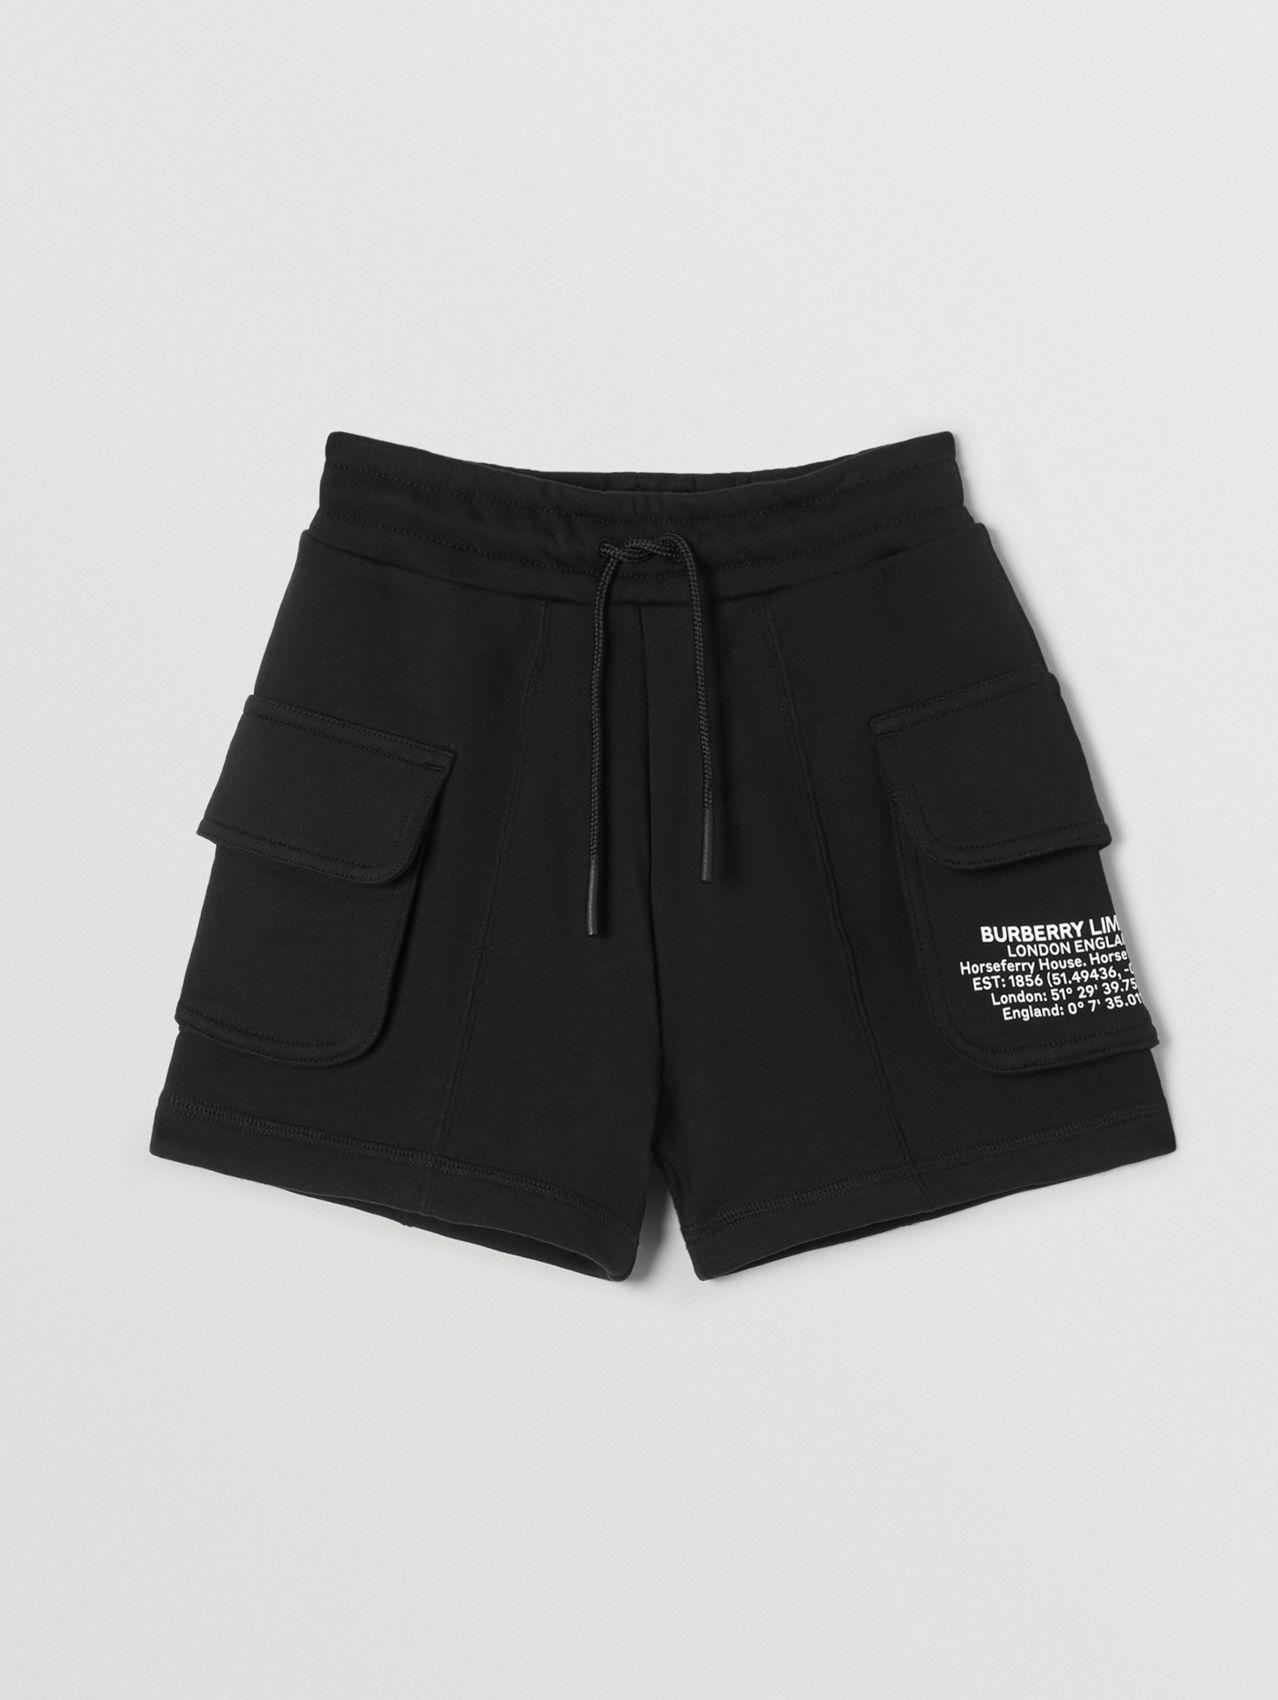 Location Print Cotton Drawcord Shorts (Black)